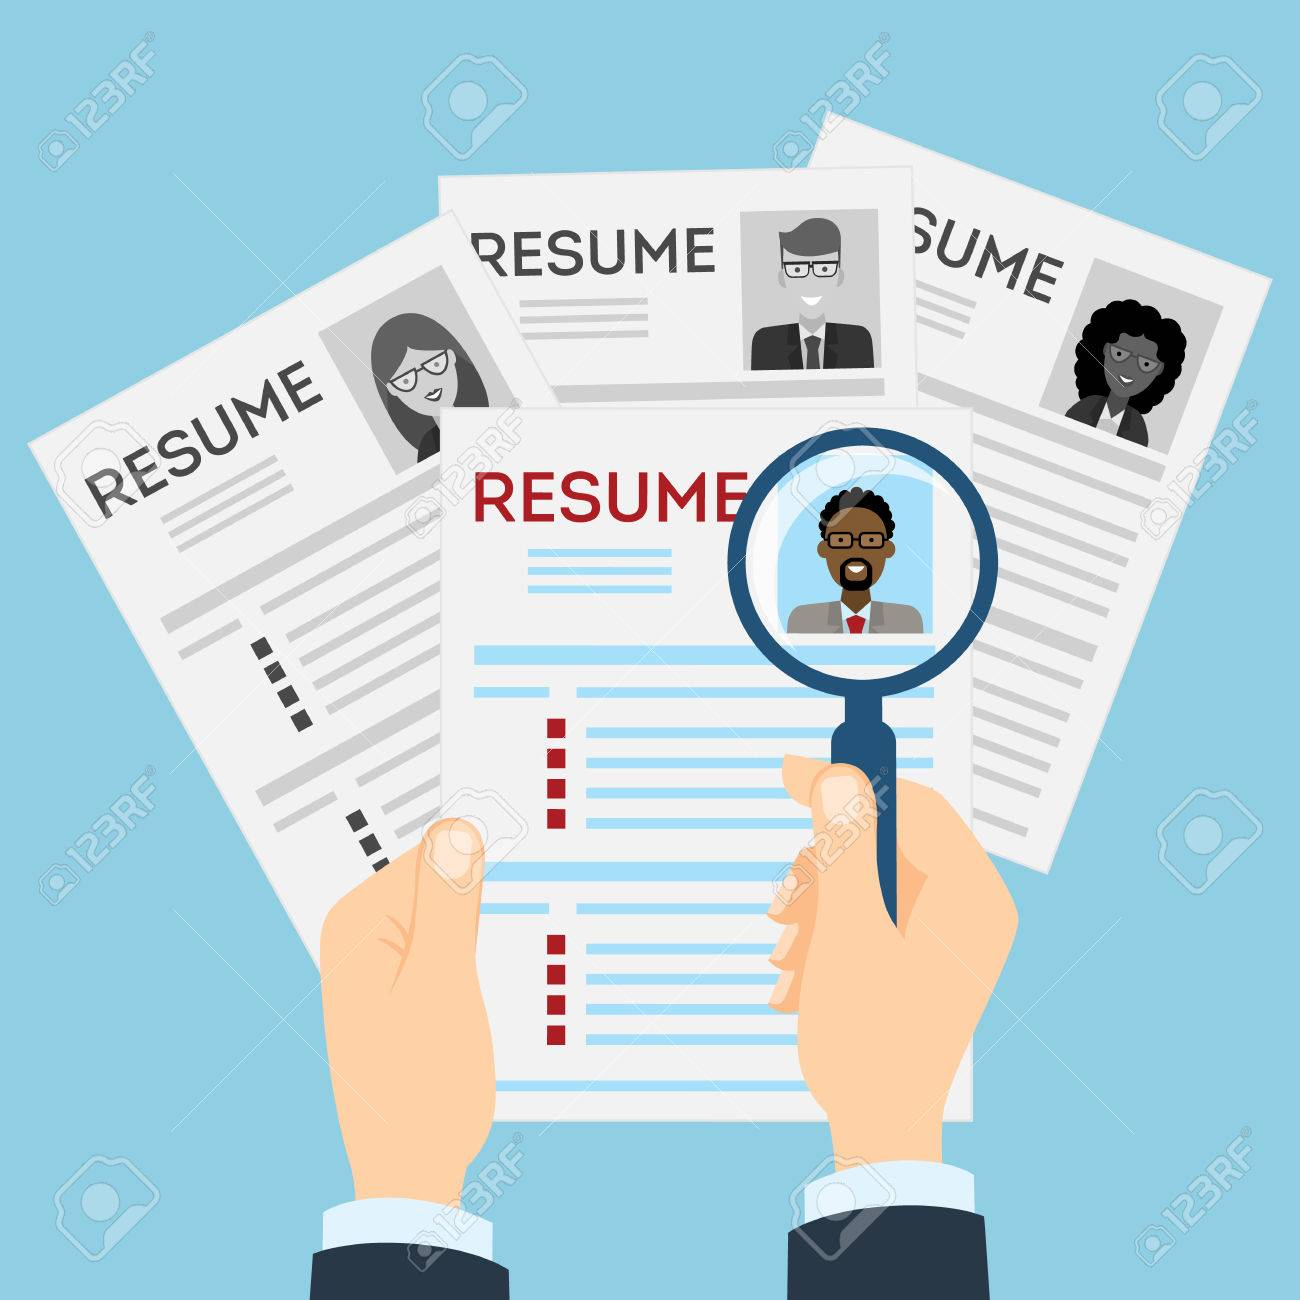 Amazing Resumes With Magnifier At The Table. Cv Resume Concept. Finding A Worker.  Apply Regarding Finding Resumes